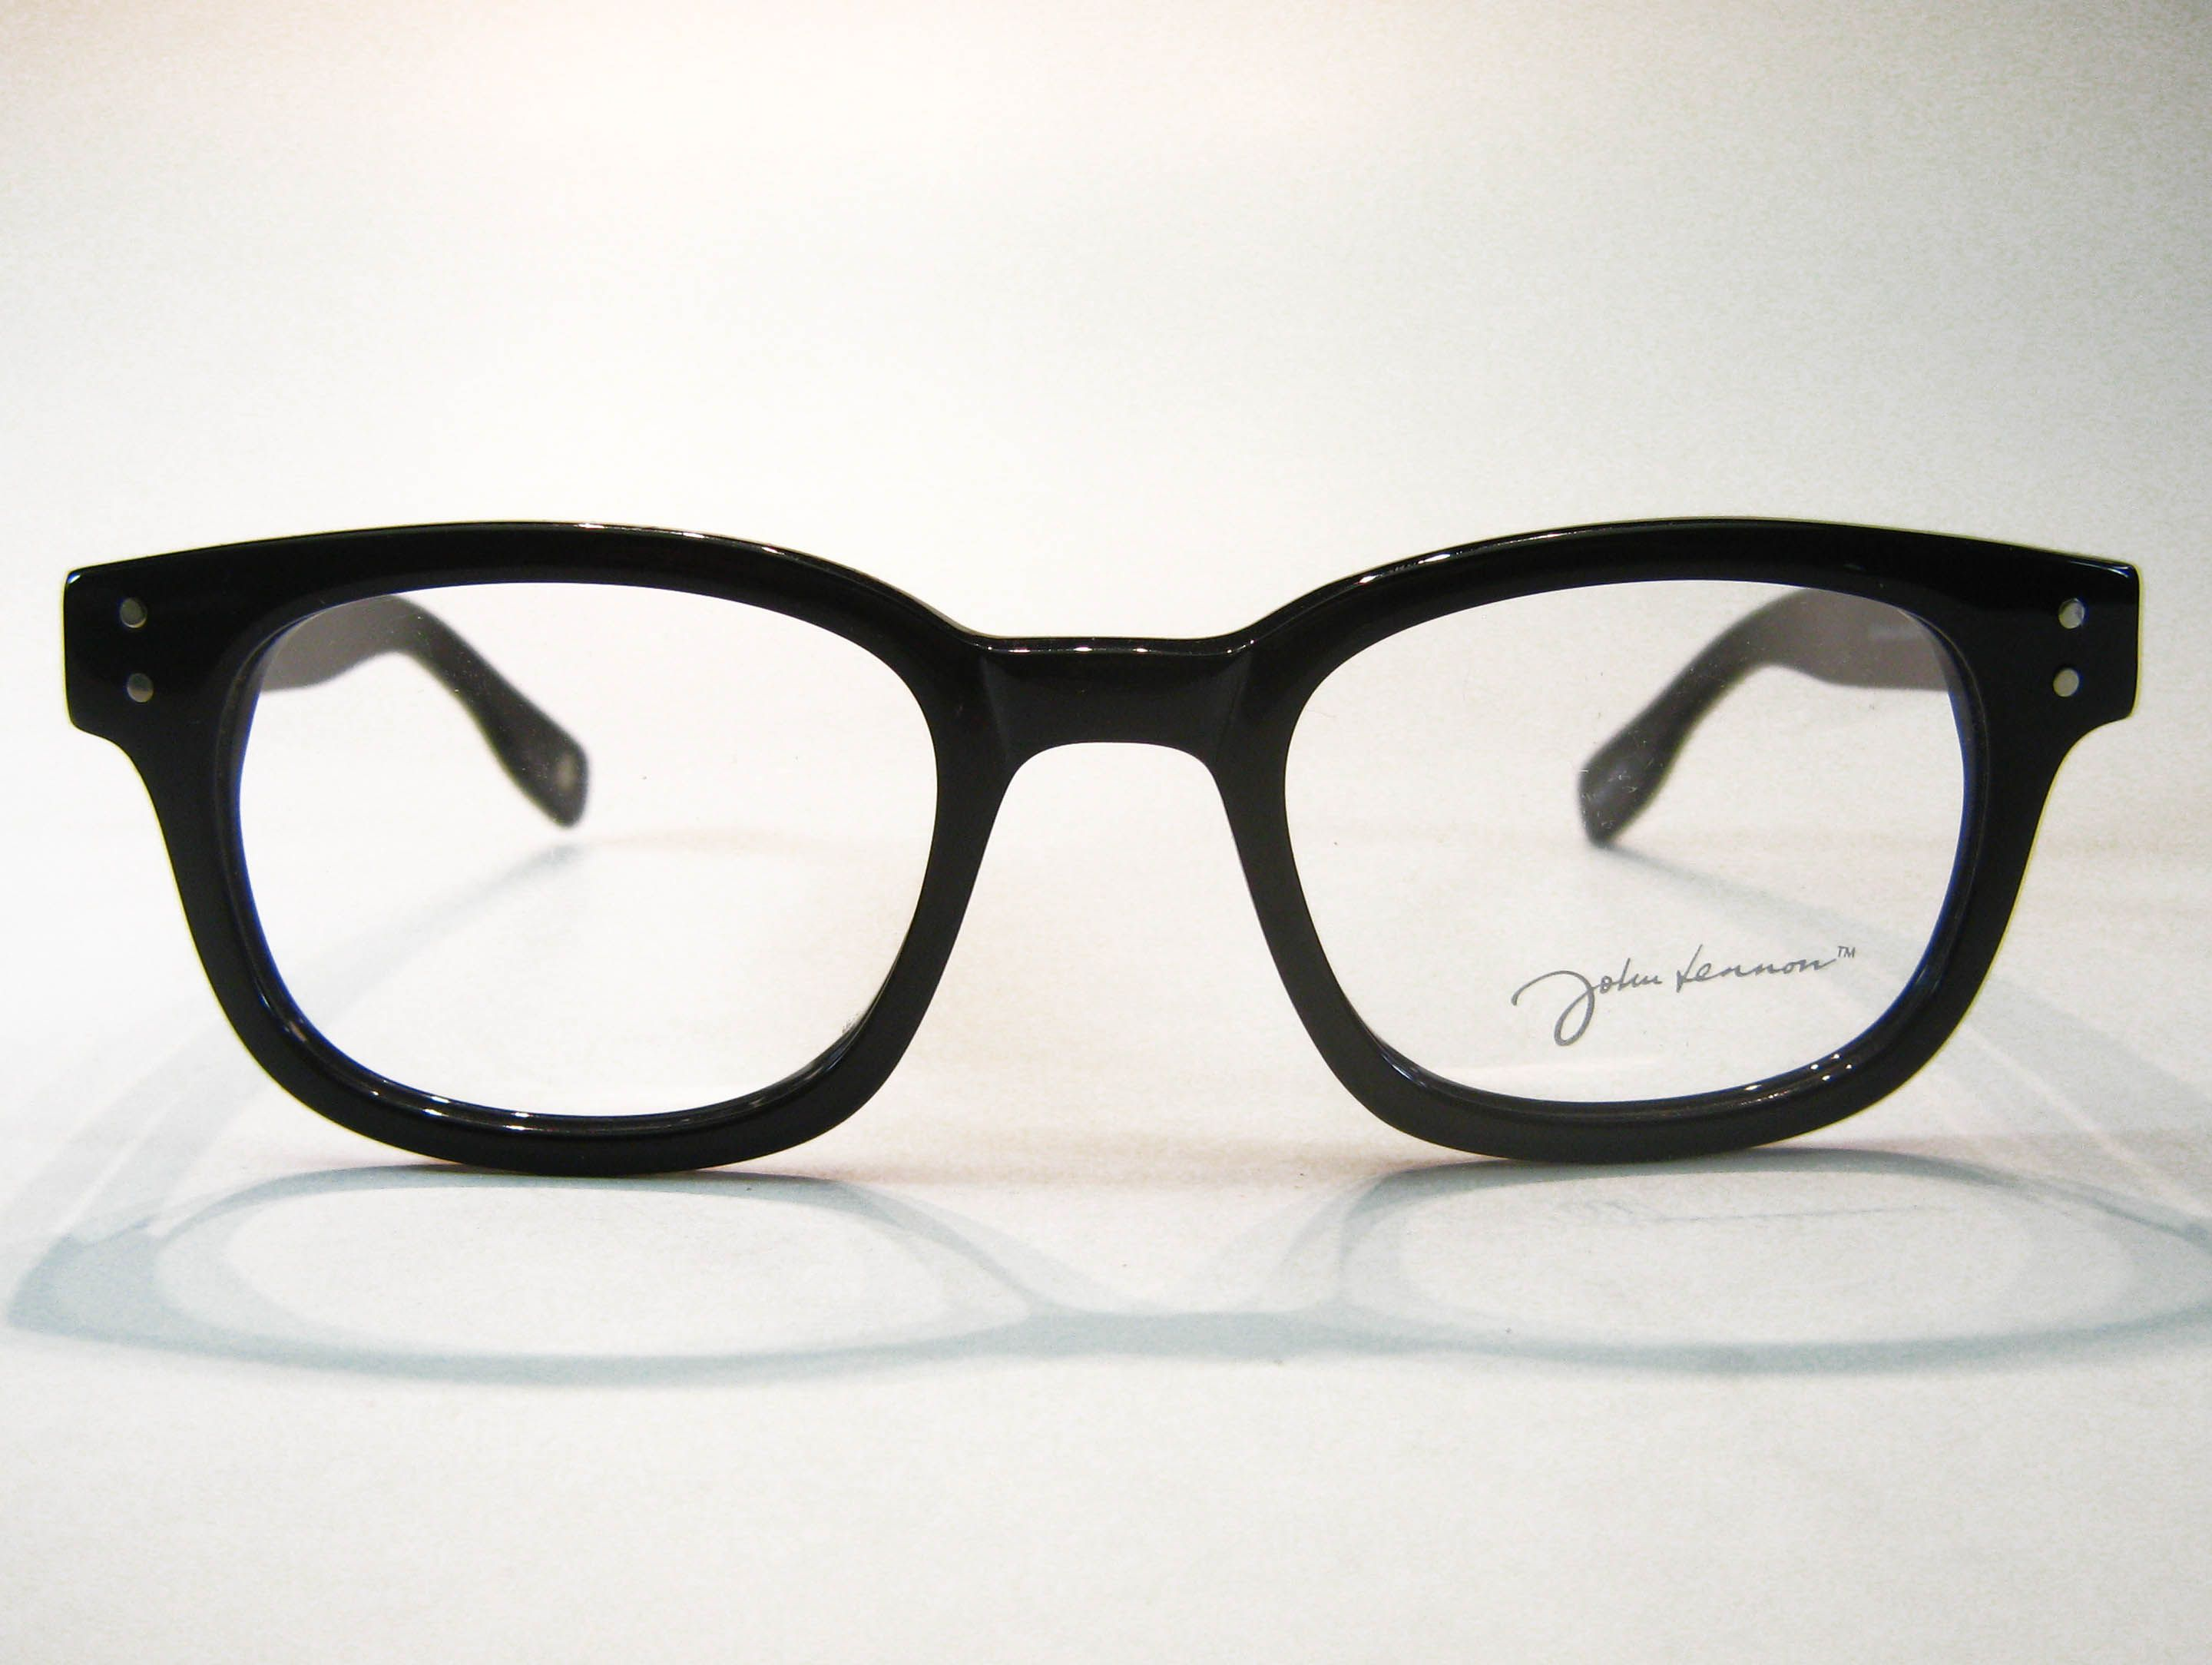 693ee3ce76f3f Optical Frames - John Lennon Retro 3